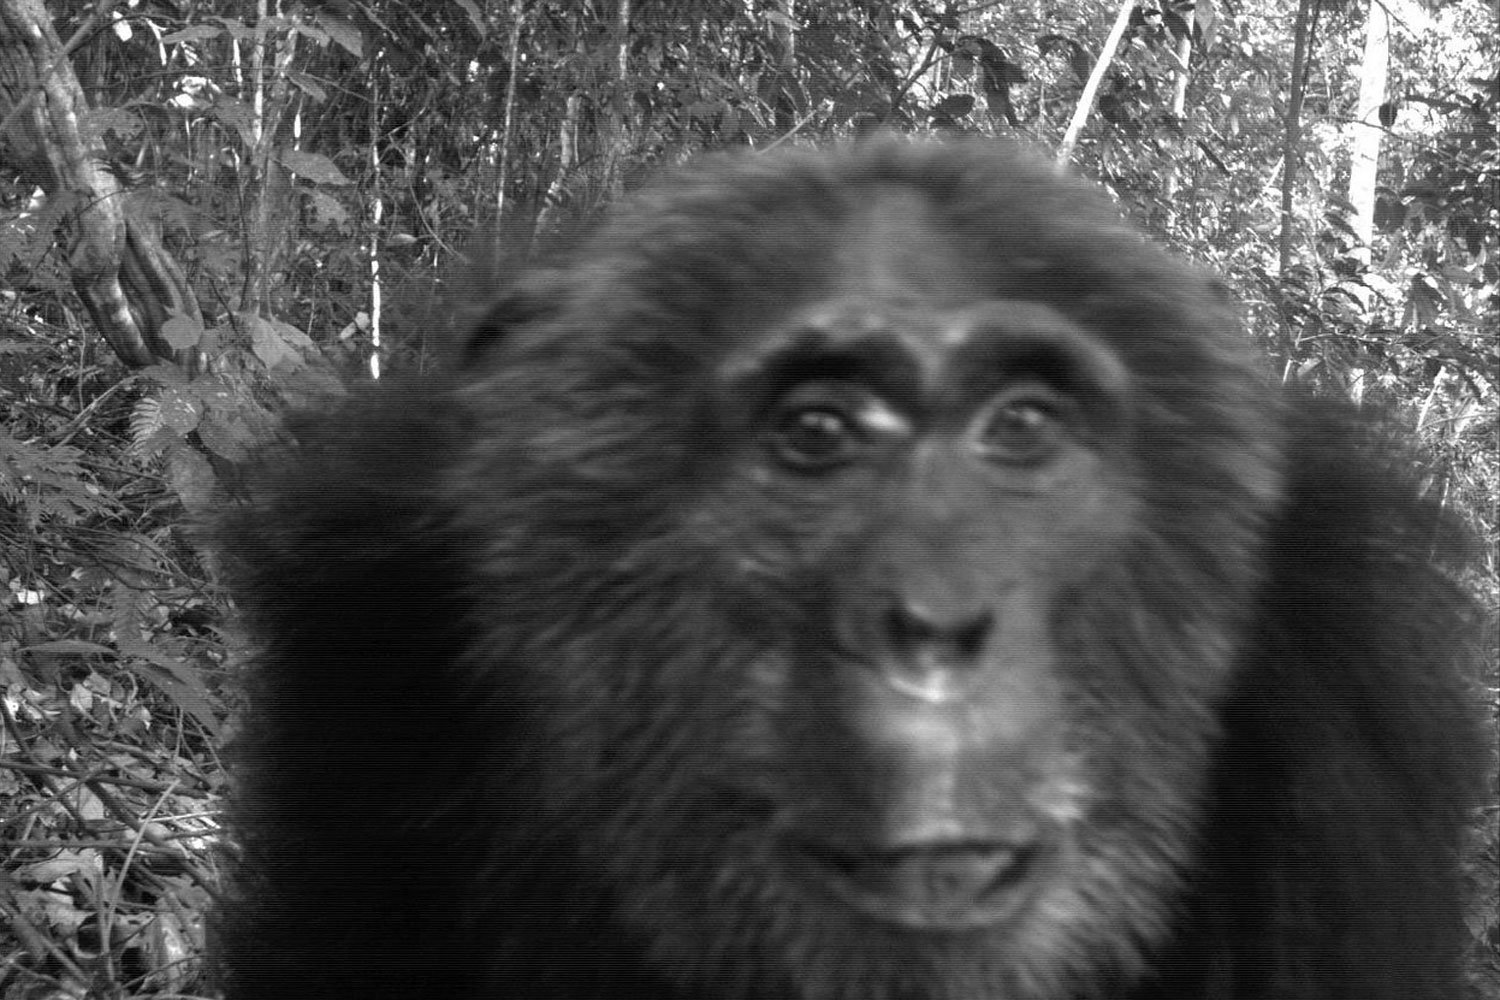 A photograph released Aug. 16, 2011 by the Wildlife Conversation Society. The image was taken as part of the first Global Camera Trap Mammal study done by The Tropical Ecology Assessment and Monitoring Network (TEAM) and shows a Pan troglodytes (Common chimpanzee) in Bwindi Impenetrable Forest, Uganda.